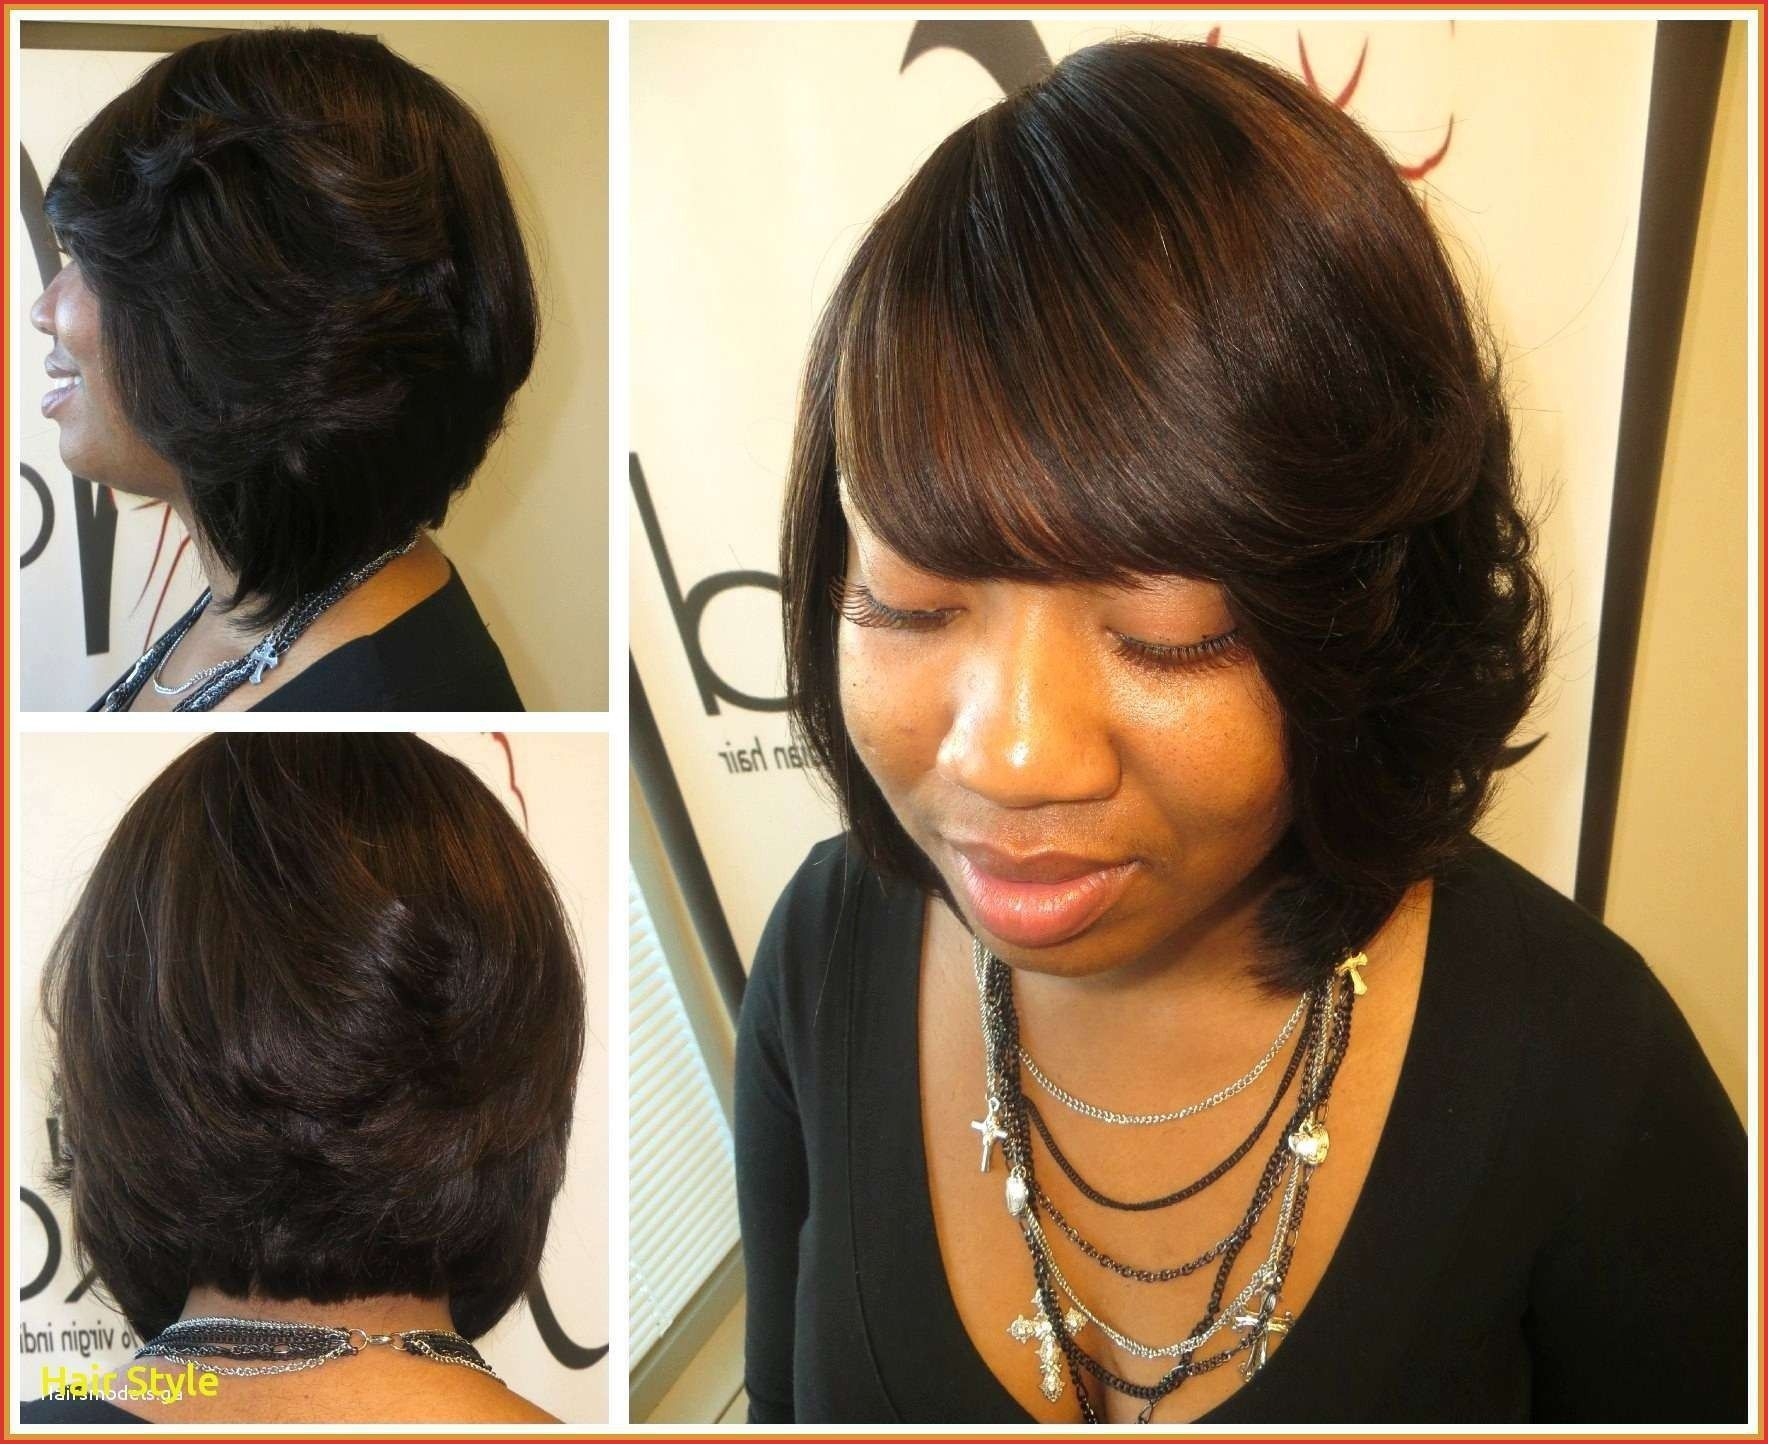 Short Quick Weave Hairstyles 2014 136117 Awesome Hairstyles for Little Girls with Short Hair ... #27piecehairstyles Short Quick Weave Hairstyles 2014 136117 Awesome Hairstyles for Little Girls with Short Hair Hardeeplive #27piecehairstyles